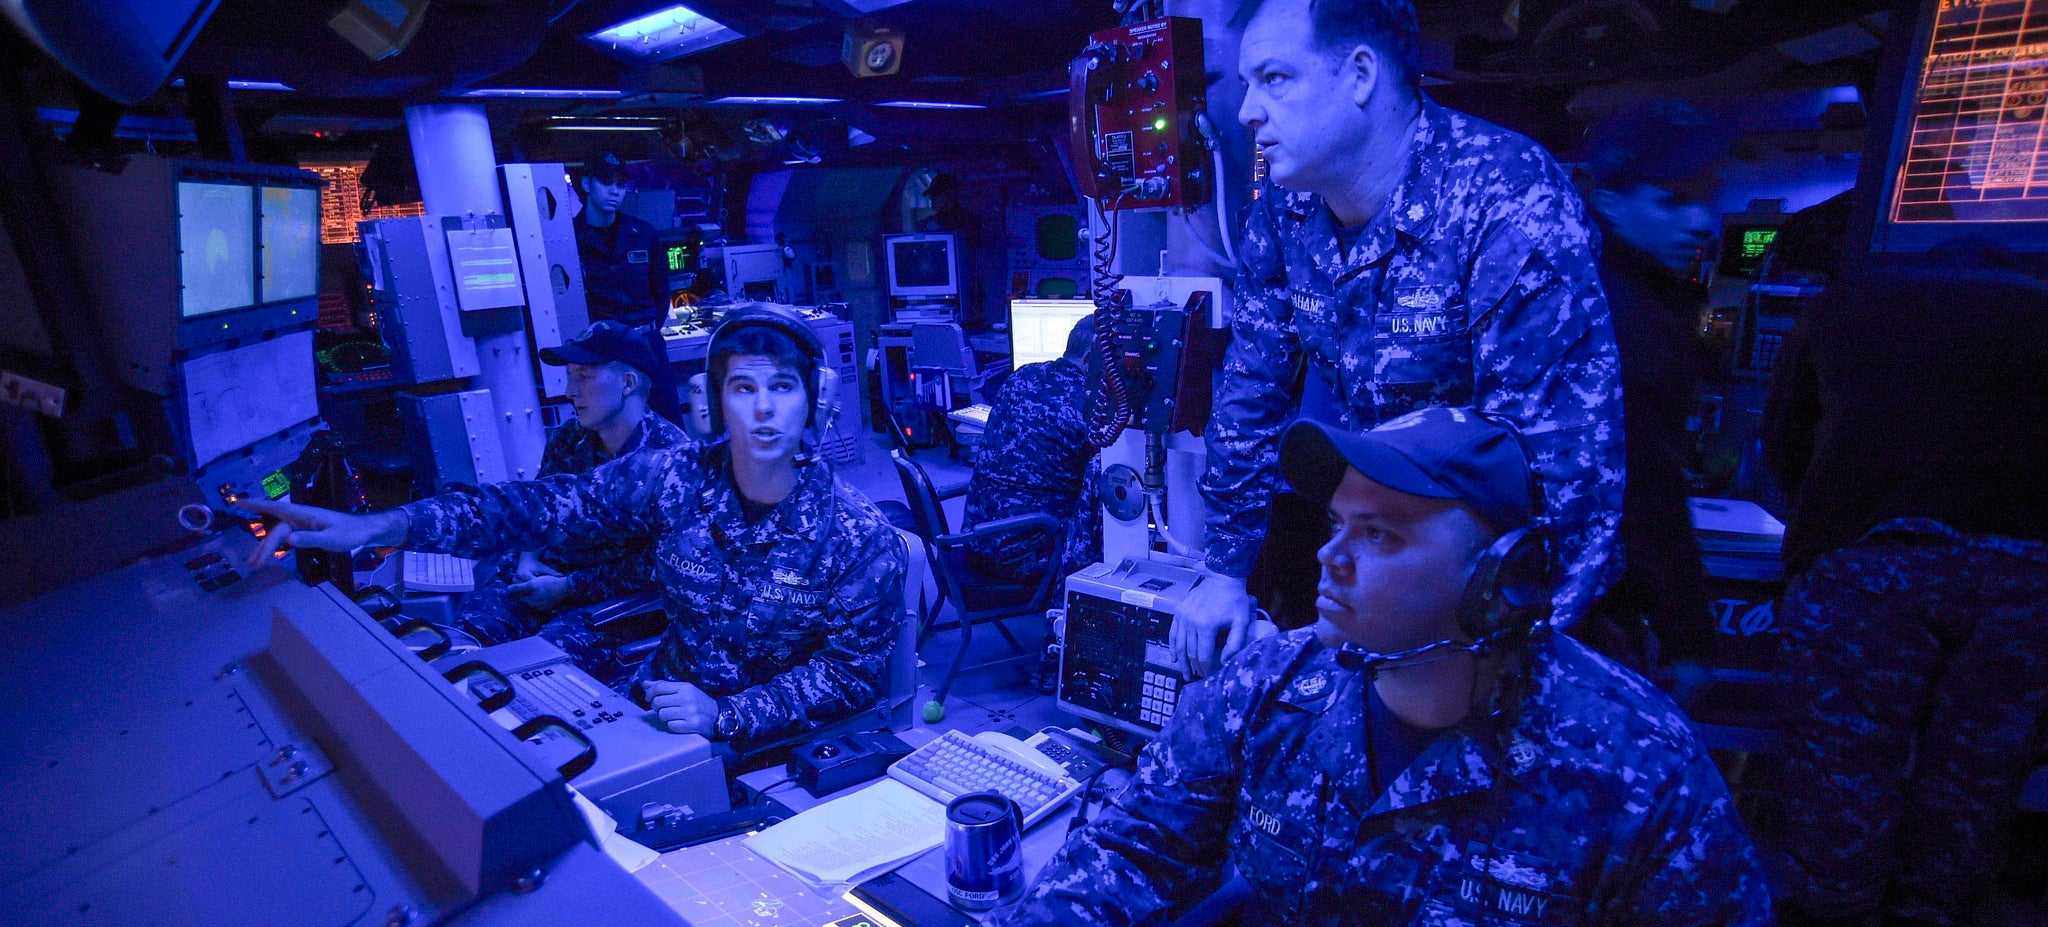 The U.S. Navy Wants to Buy Zero-Day Security Flaws From You